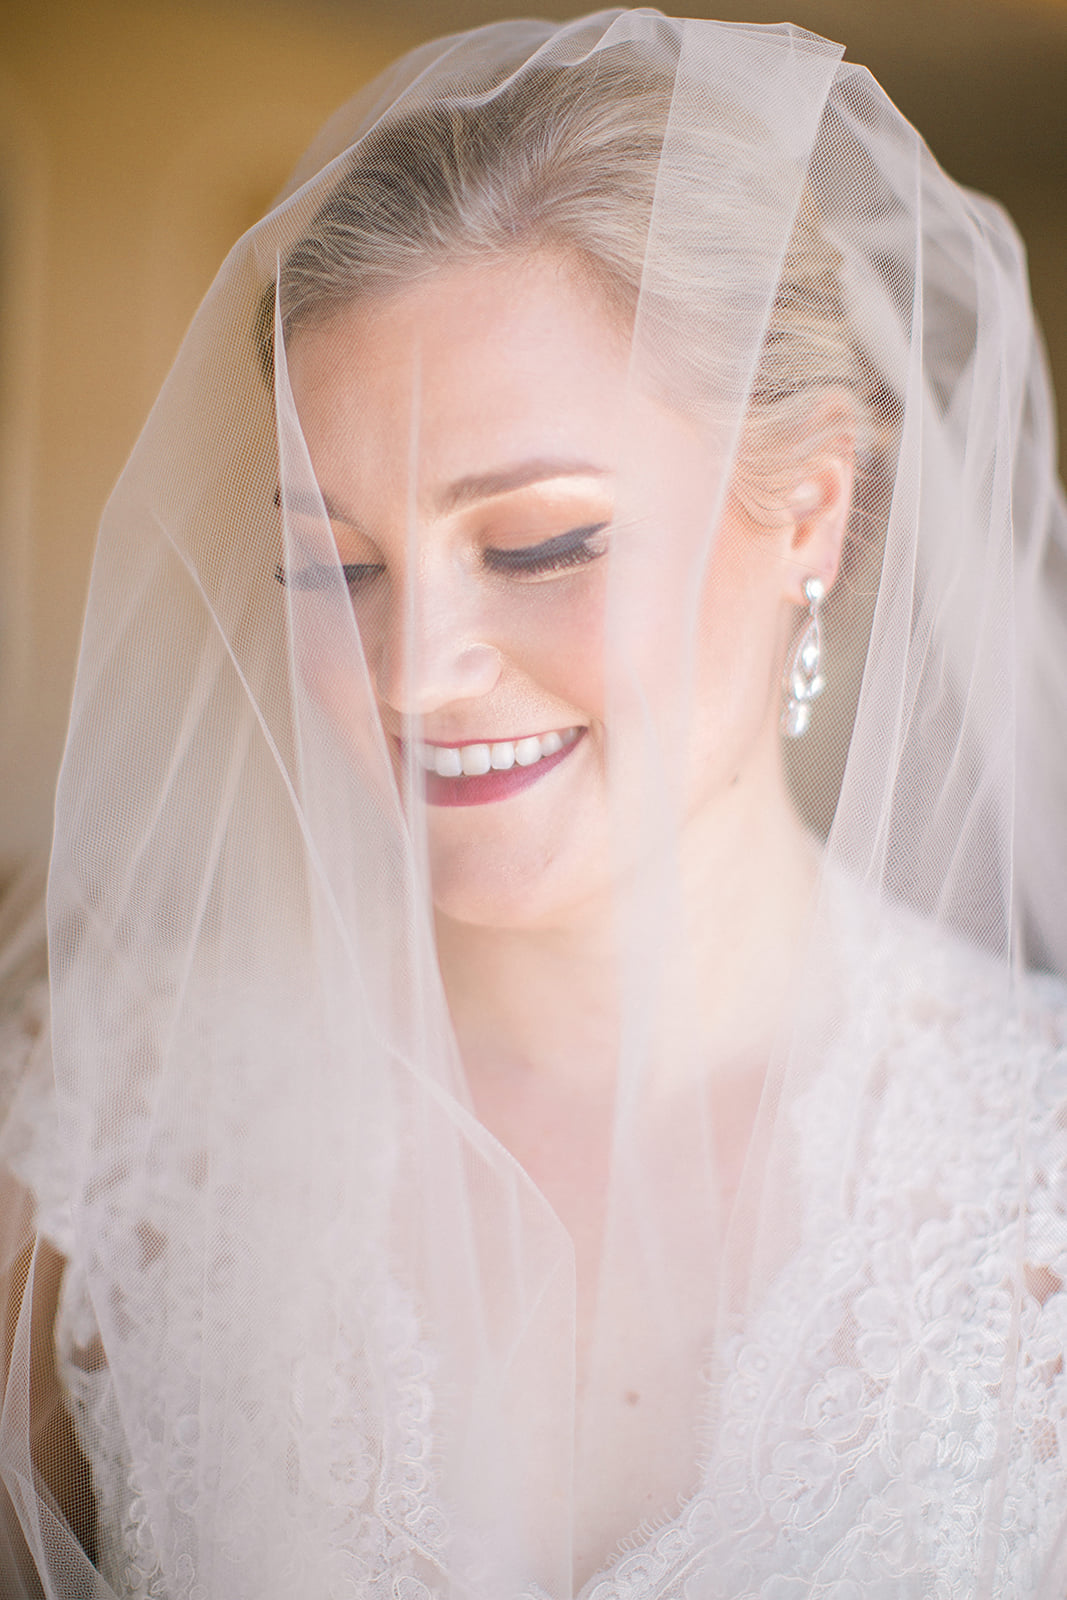 Mirandart Makeup with veil over brides face, Romantic wedding venue in Minnesota | photo by Rachel Graff Photography